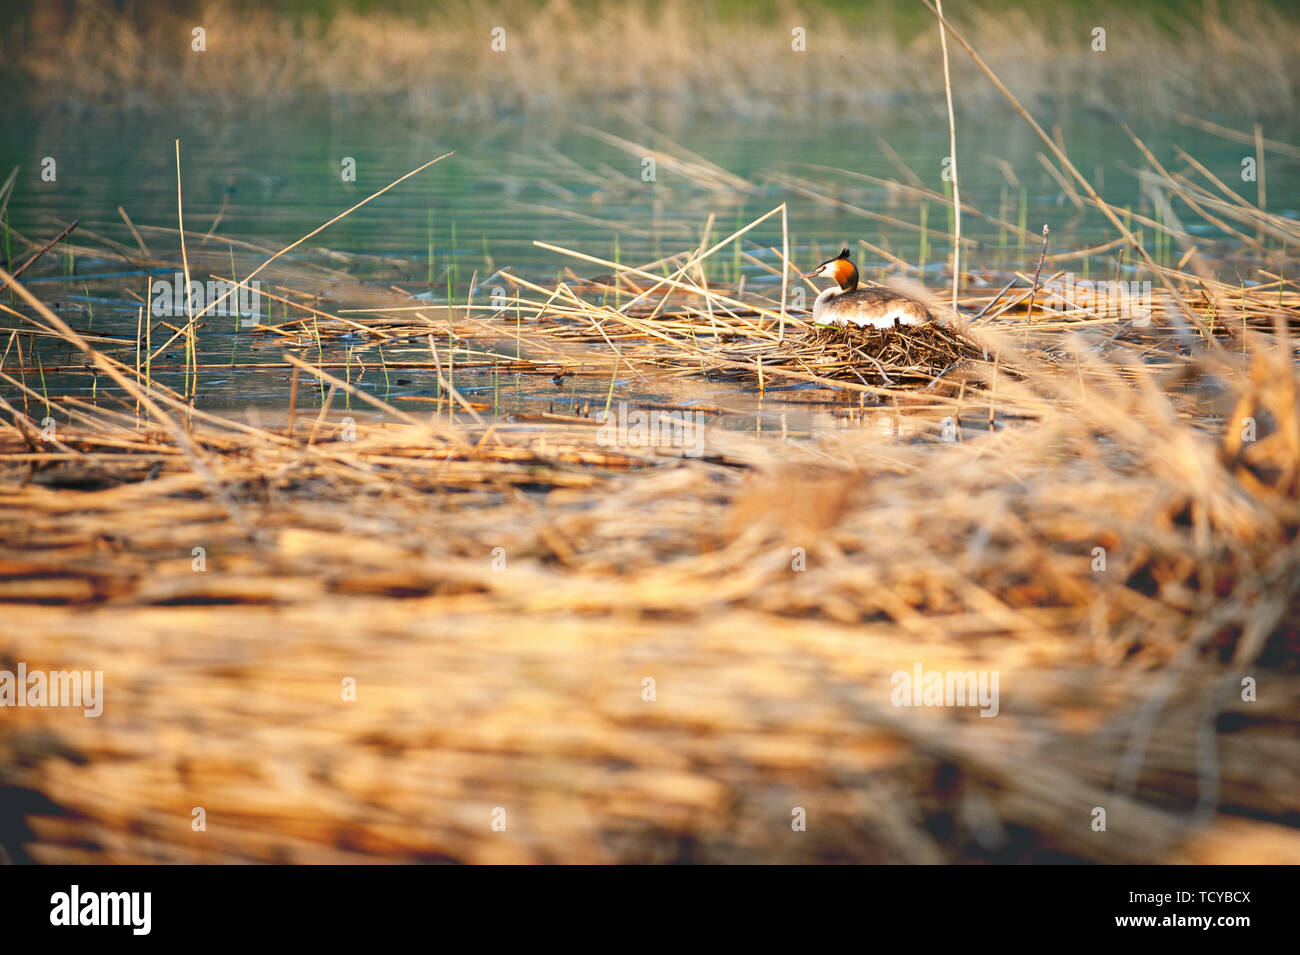 Great crested grebe sitting on eggs in nest. Podiceps cristatus. Wildlife photography with blurred background. - Stock Image